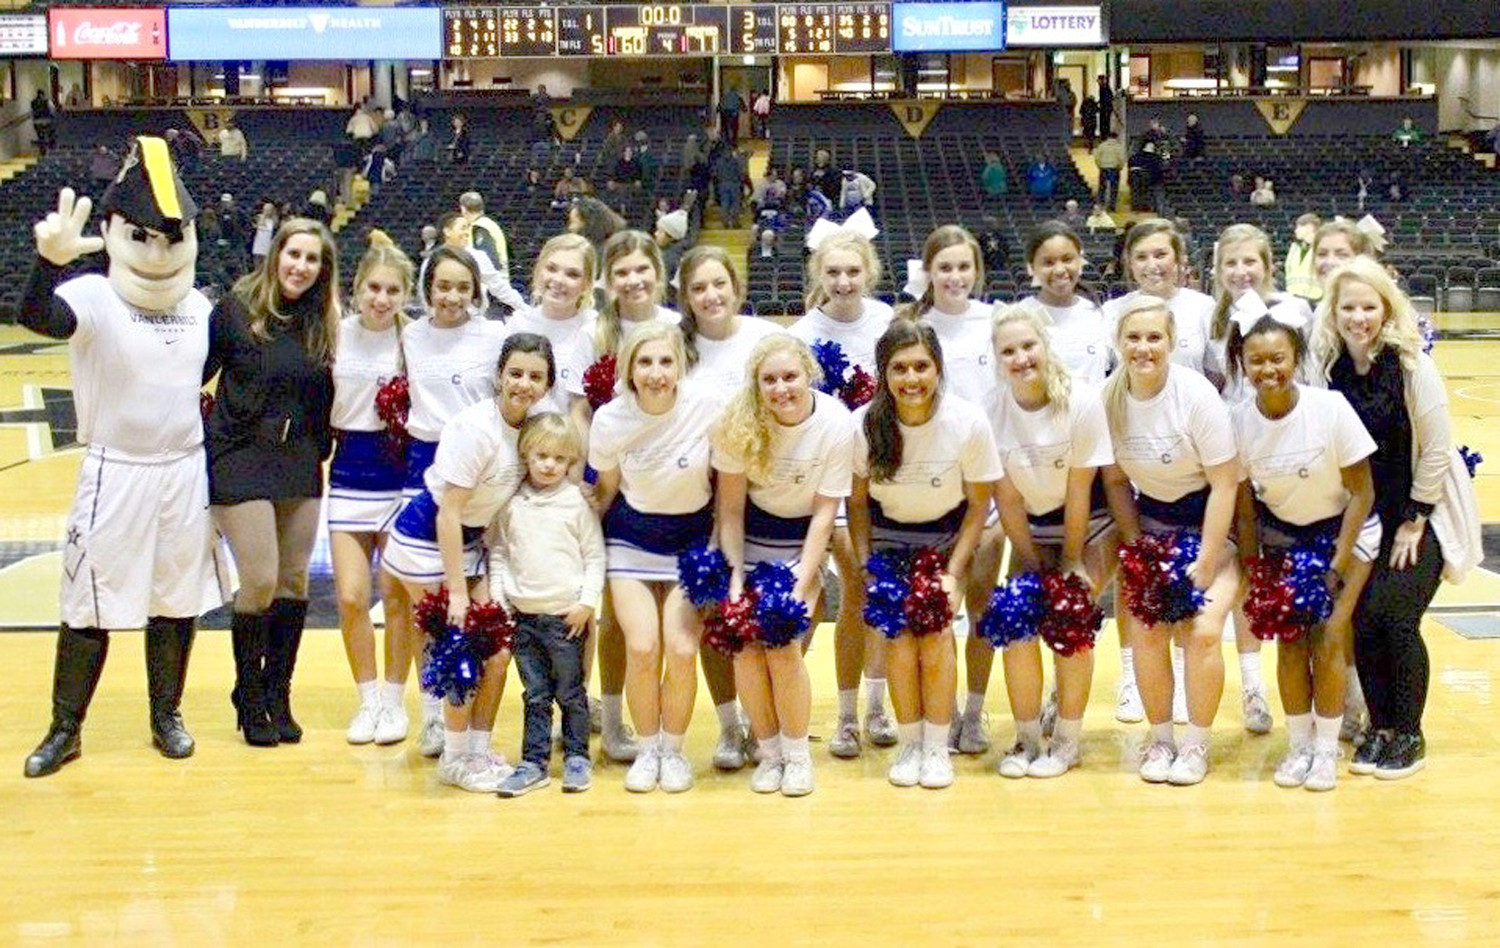 CLEVELAND HIGH SCHOOL'S varsity cheerleading squad recently performed at Vanderbilt University. In the front row, from left, are Caroline Owens, Hannah Graig, Lindsey Gregg, Olivia Calfee, Katelyn Hanshew, Grace Martin, Brianna Tate and Melissa Barnett. In back are Jacquellyn Ingle, Jaylee Ingle, Tiffany Croft, Anna Kate Sims, Callahan Tentler, Cameron Davis, Elizabeth Eachus, Haley Younce, Jaelyn Blackwell, Lanie Neidling, Caroline Shaver and Caroline Balmer.